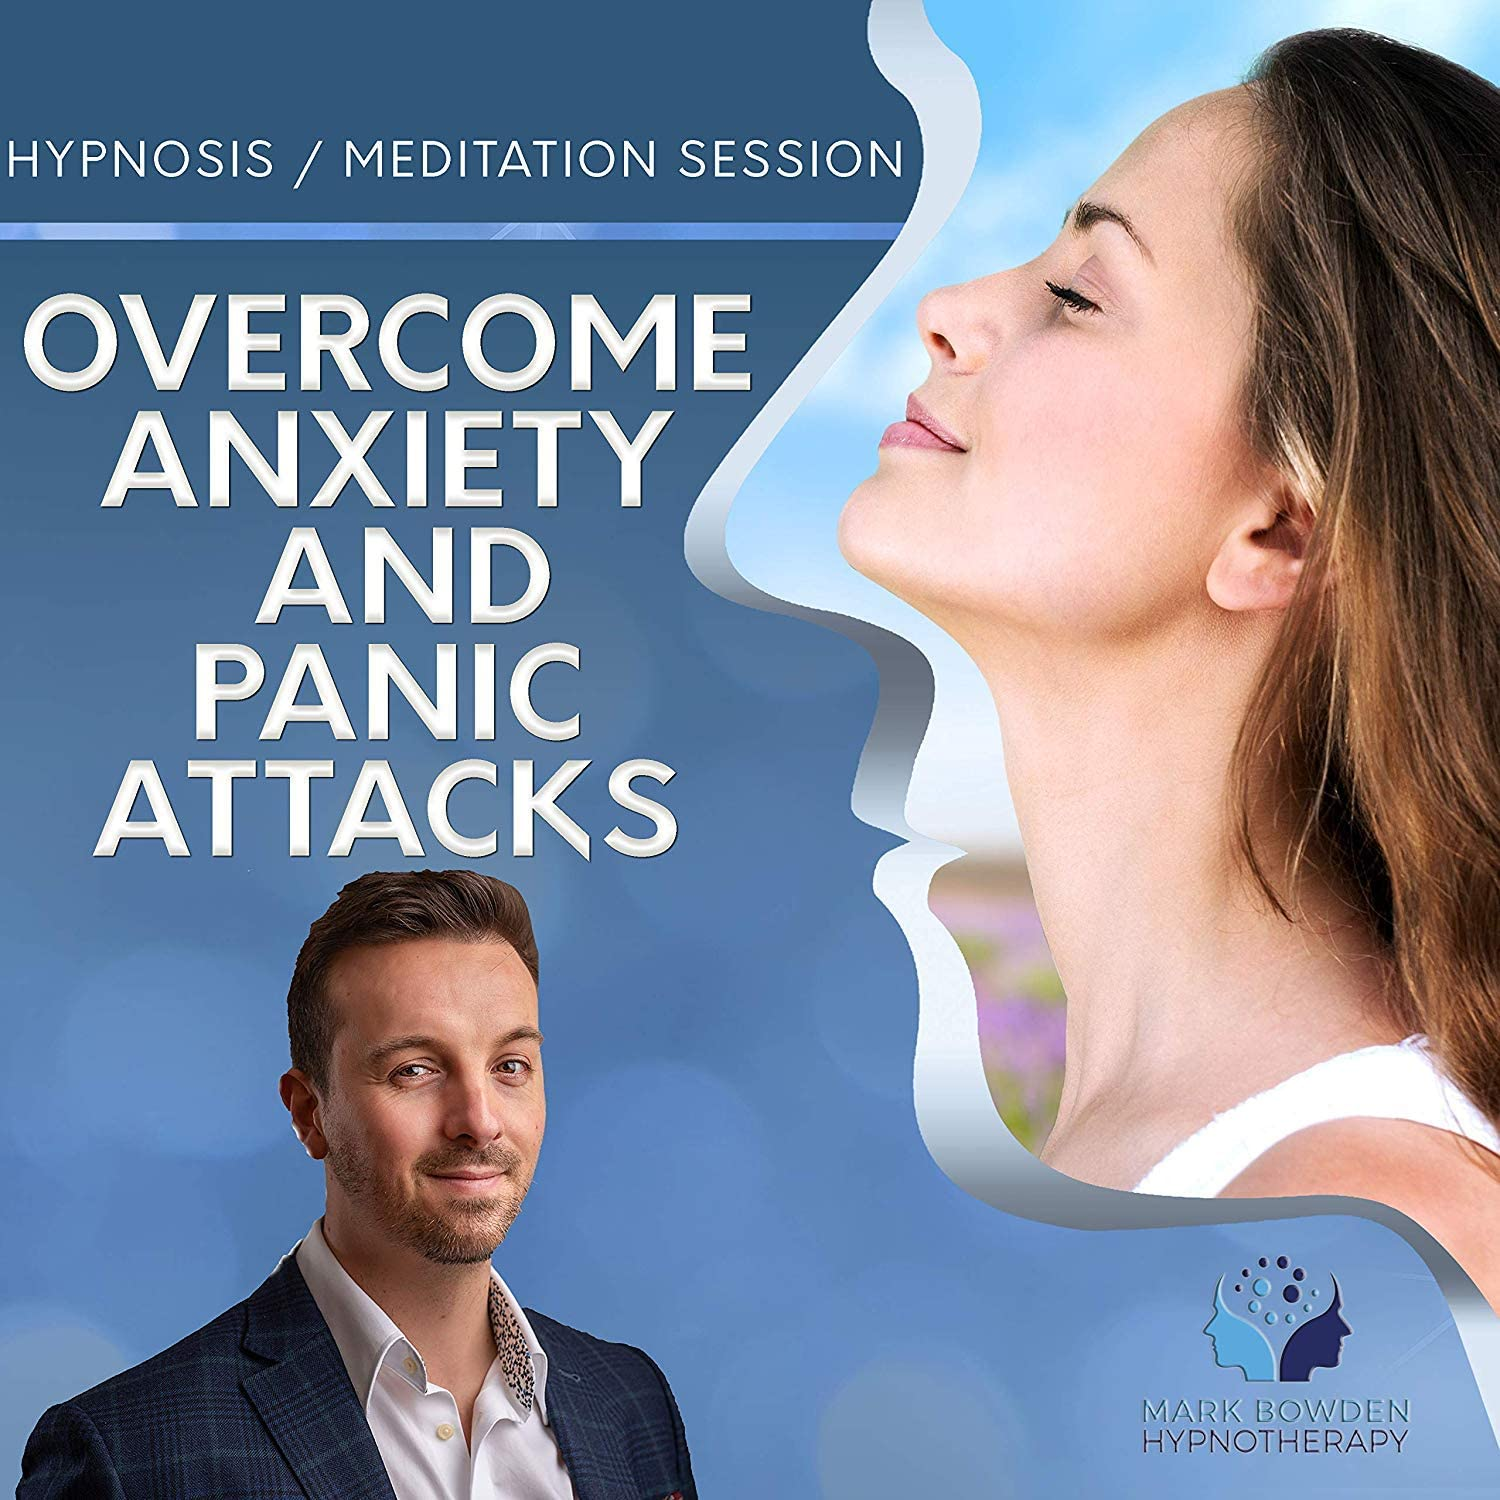 Overcome Anxiety & Panic Attacks Self Hypnosis MP3 / App and CD (3 in 1 Purchase - Sound Therapy) …